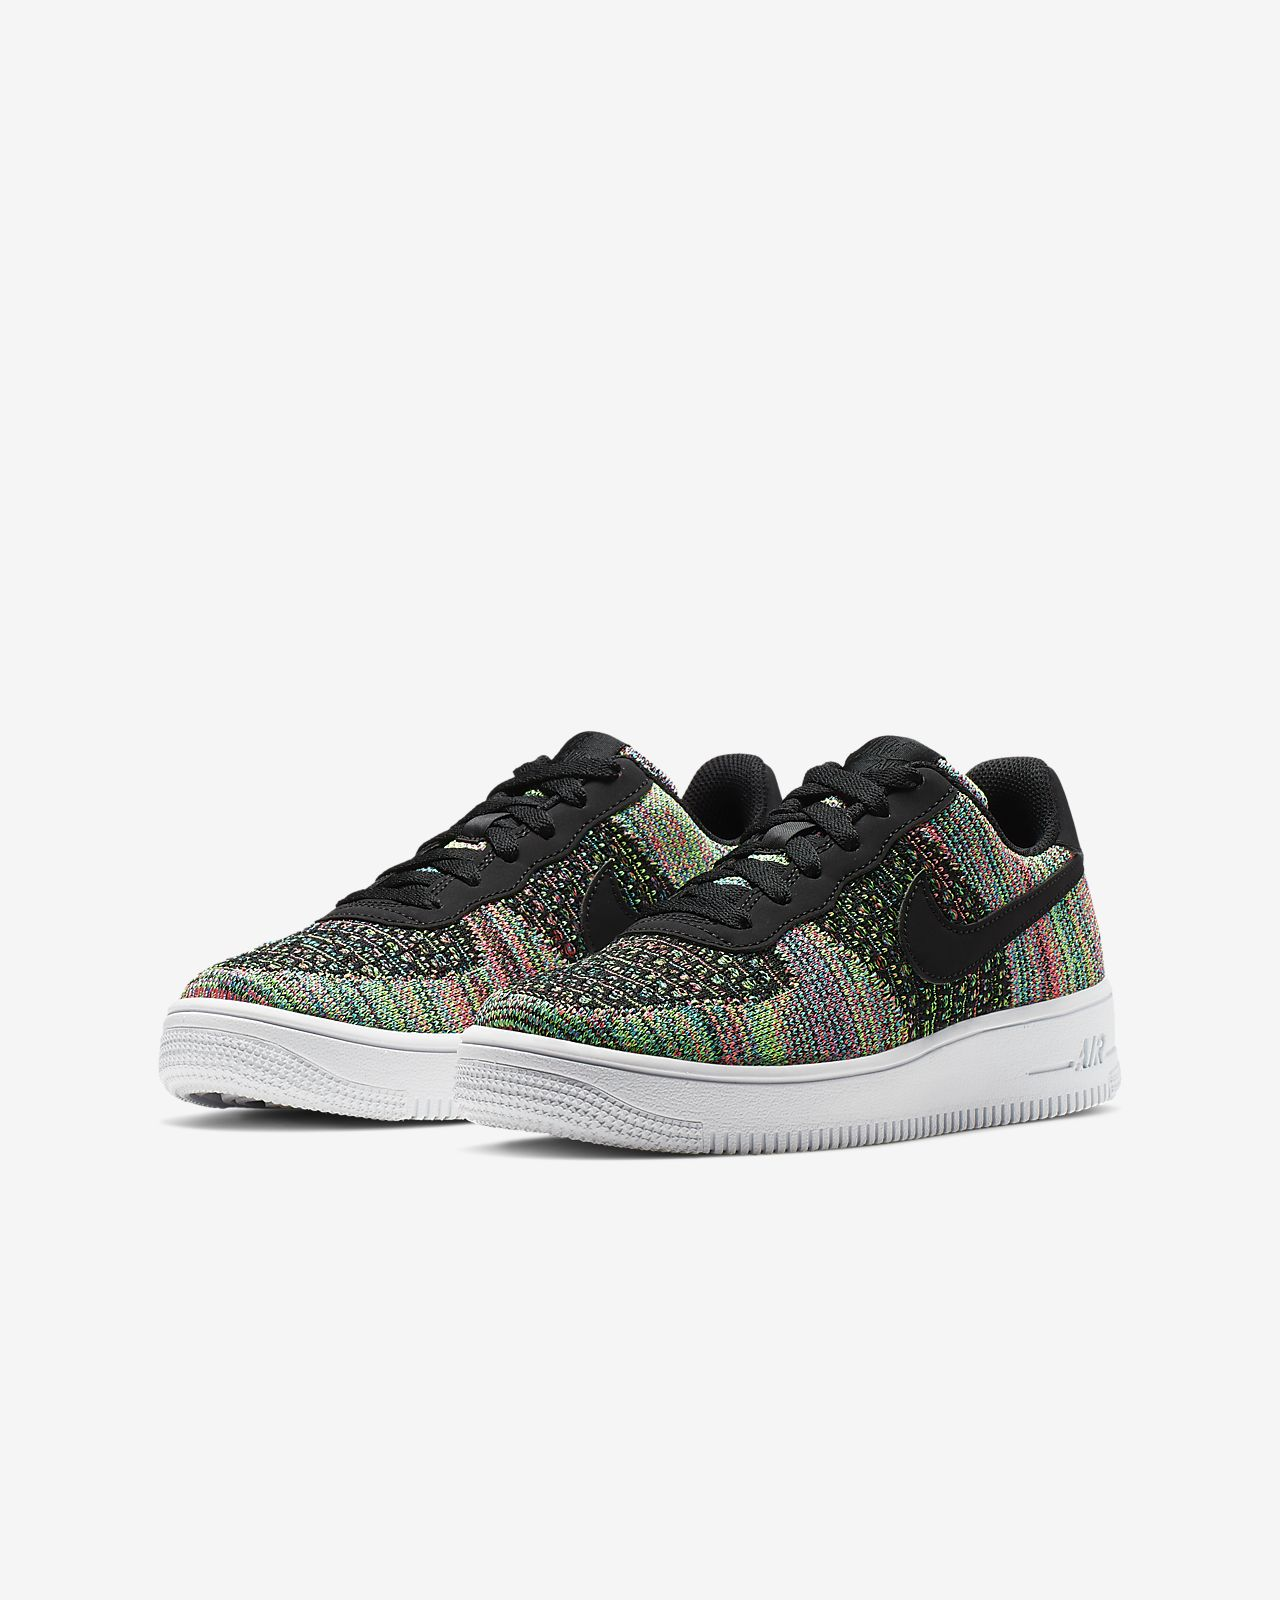 pas mal 34ab3 08d03 Nike Air Force 1 Flyknit 2.0 Younger/Older Kids' Shoe